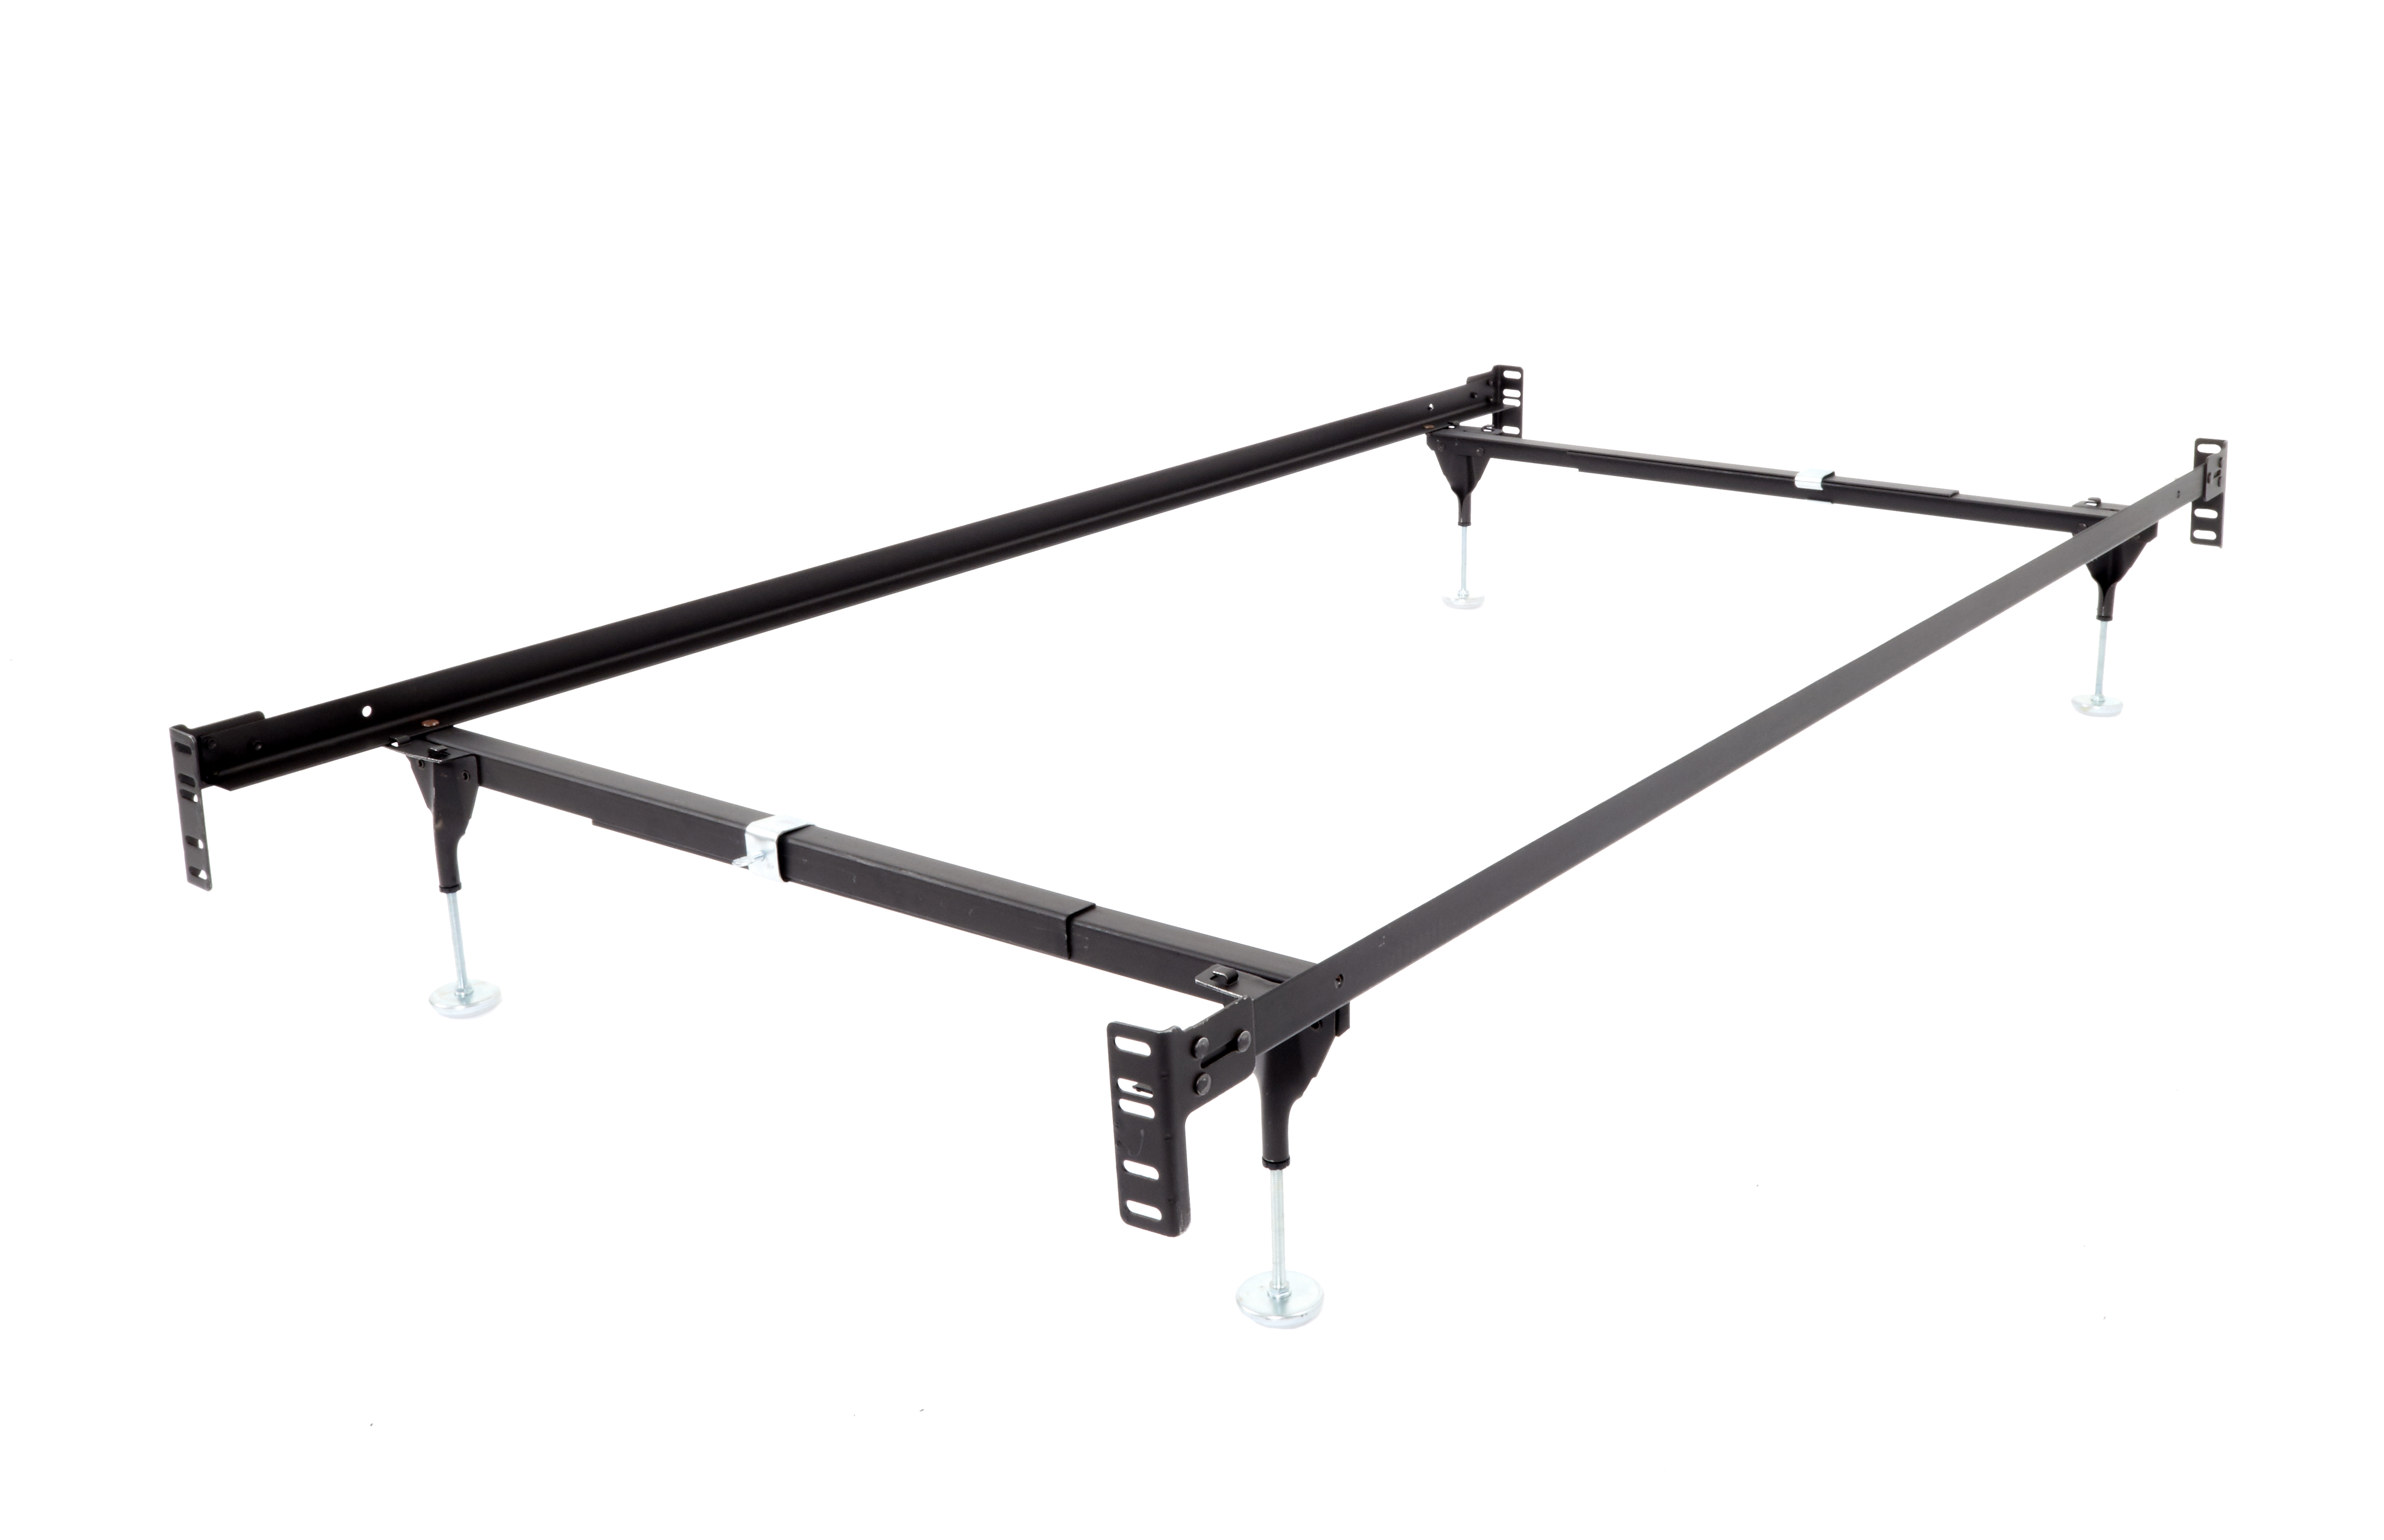 Mantua 479AGFB Frame with Footboard Brackets for Twin or Full Beds